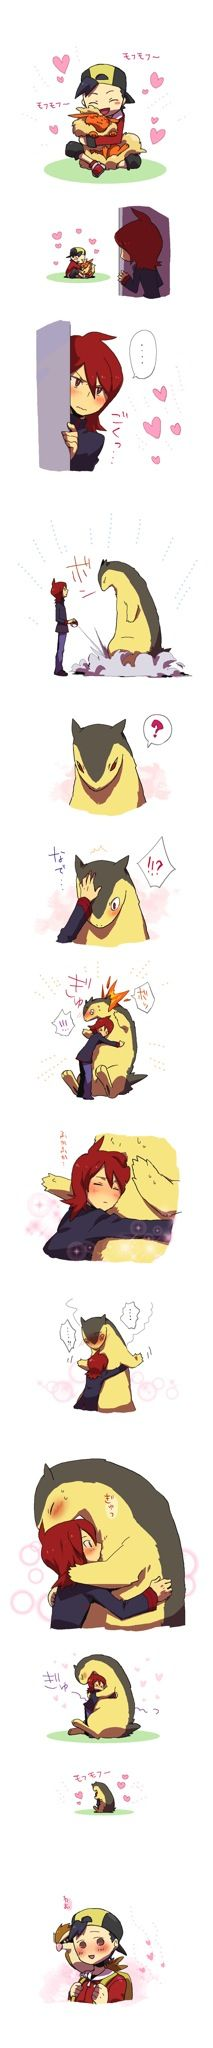 That is so cute! Everybody just wants some love from their pokemon.